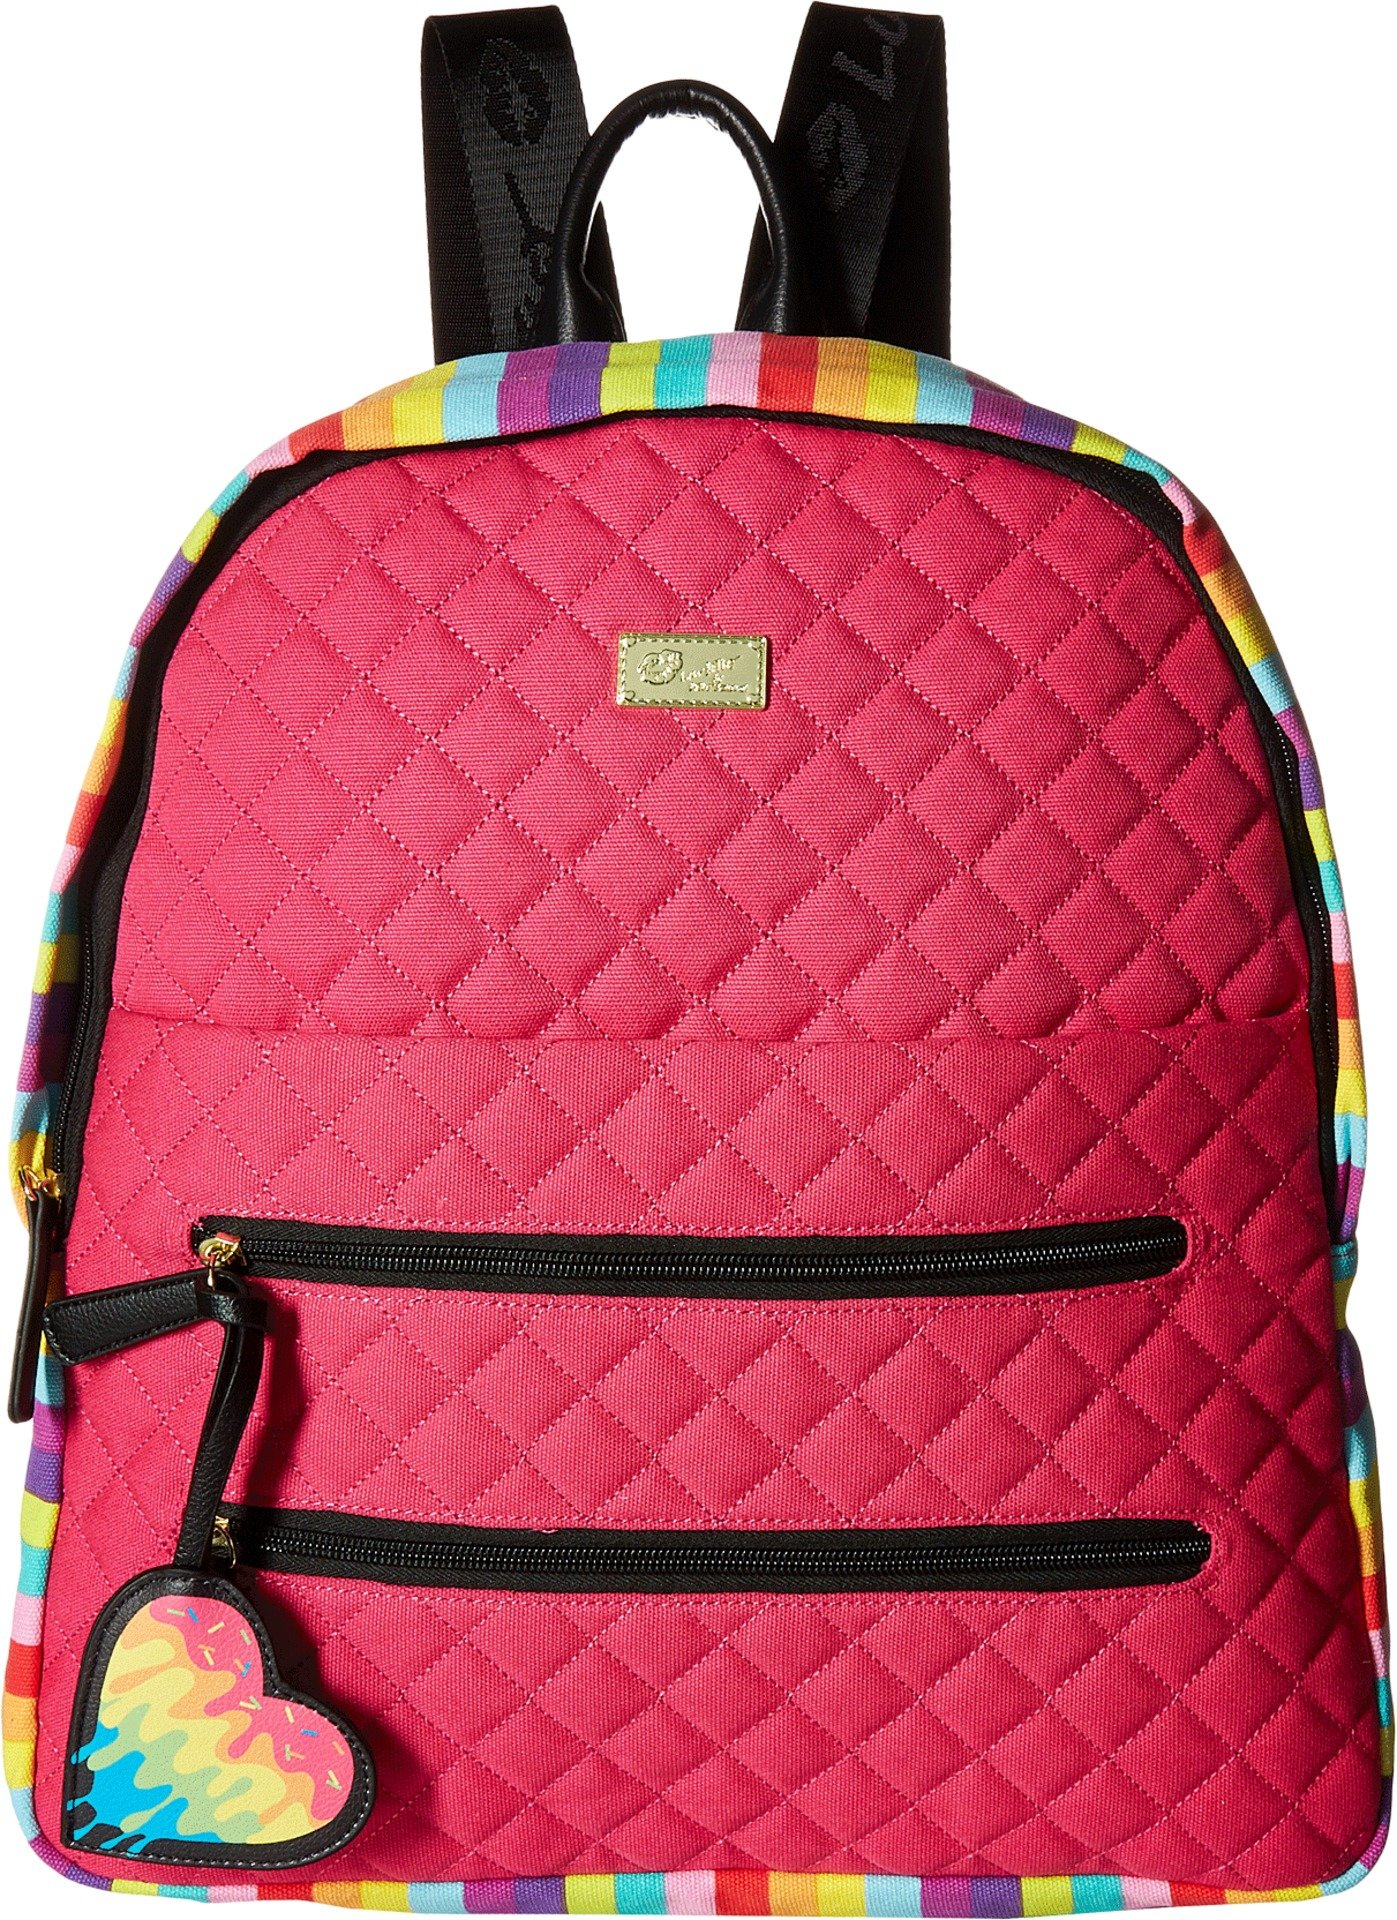 Luv Betsey Women's Bexxx Cotton Backpack Multi Faux/Green One Size